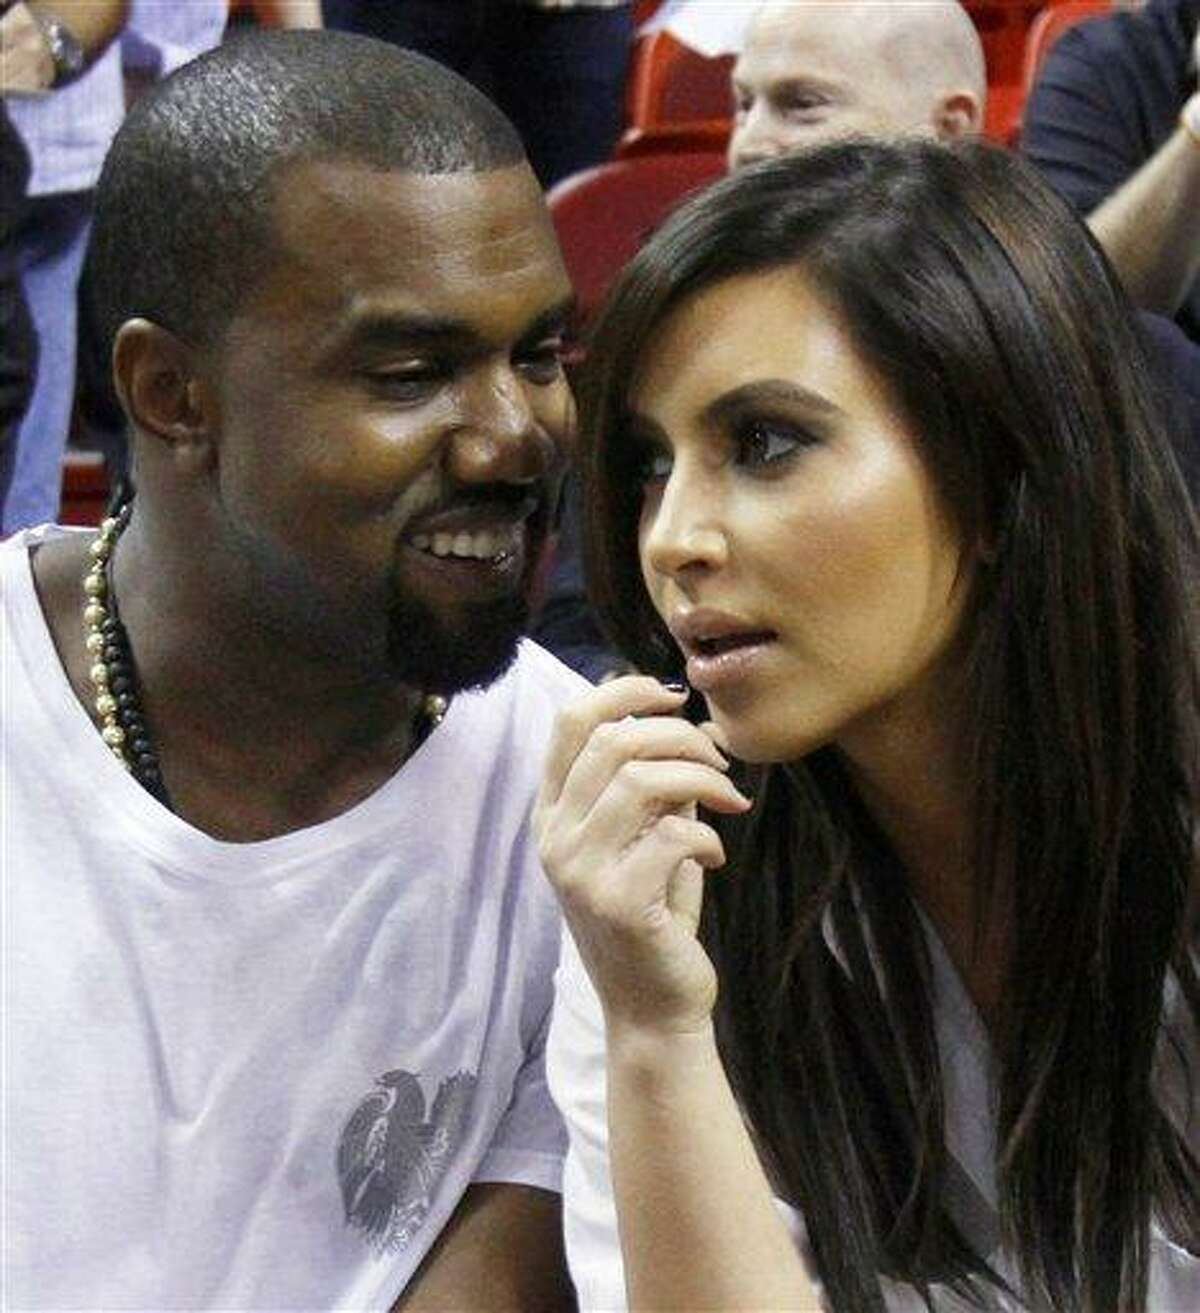 Kanye West, left, talks to his girlfriend Kim Kardashian before an NBA basketball game between the Miami Heat and the New York Knicks in Miami. Authorities say an airline employee is being investigated for allowing West and Kardashian to bypass a security checkpoint at New York's Kennedy Airport. (AP Photo/Alan Diaz, File)